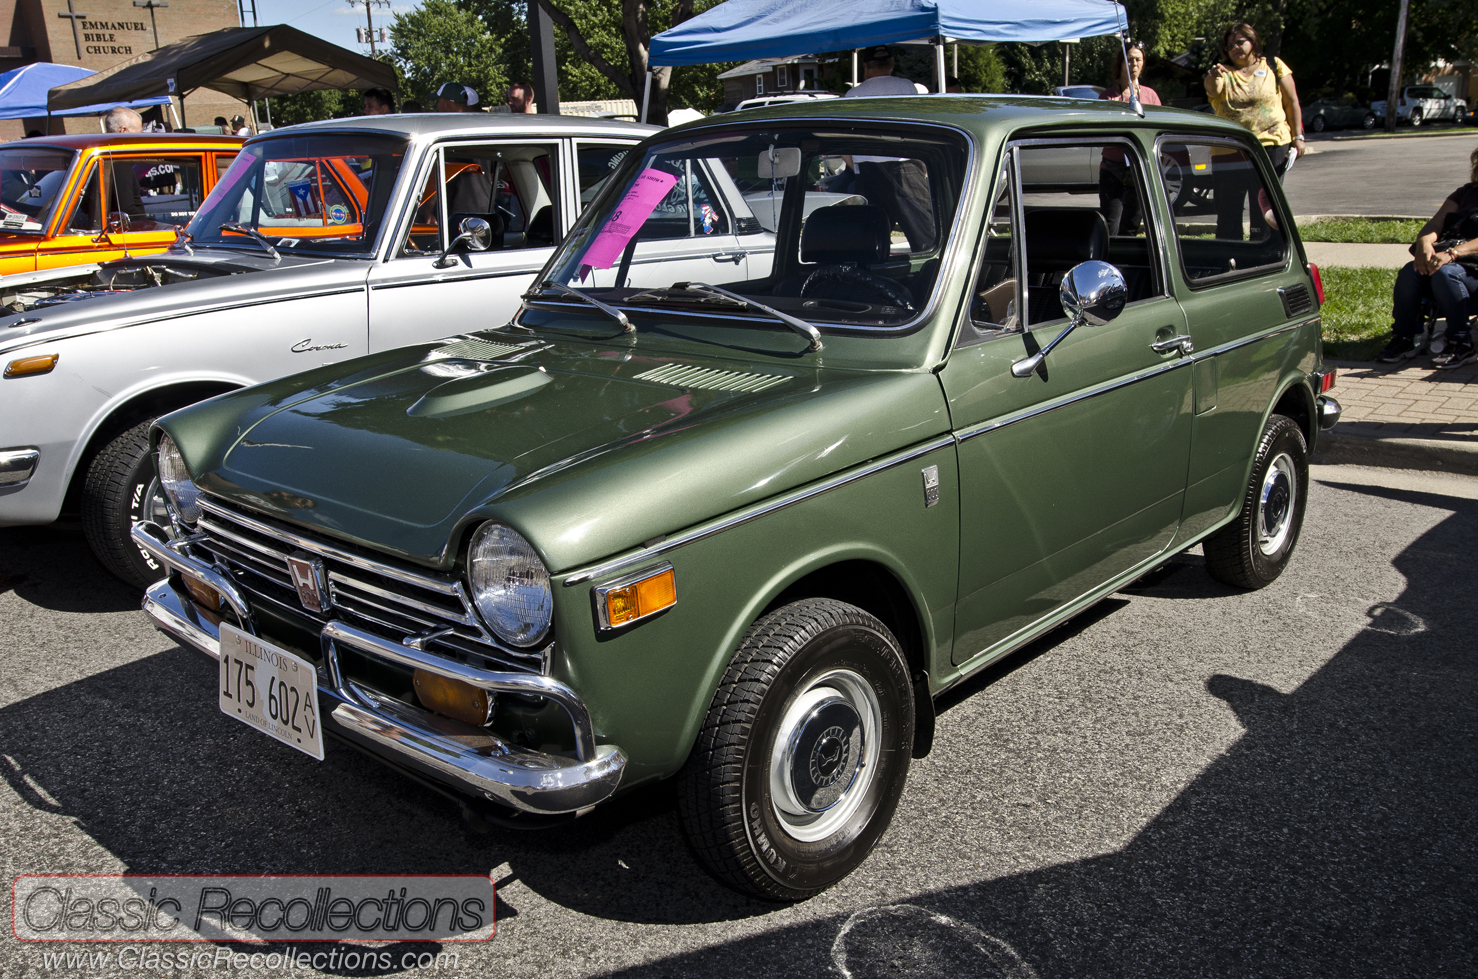 The Honda 600 Was The First Car From The Manufacturer To Be Sold In The US